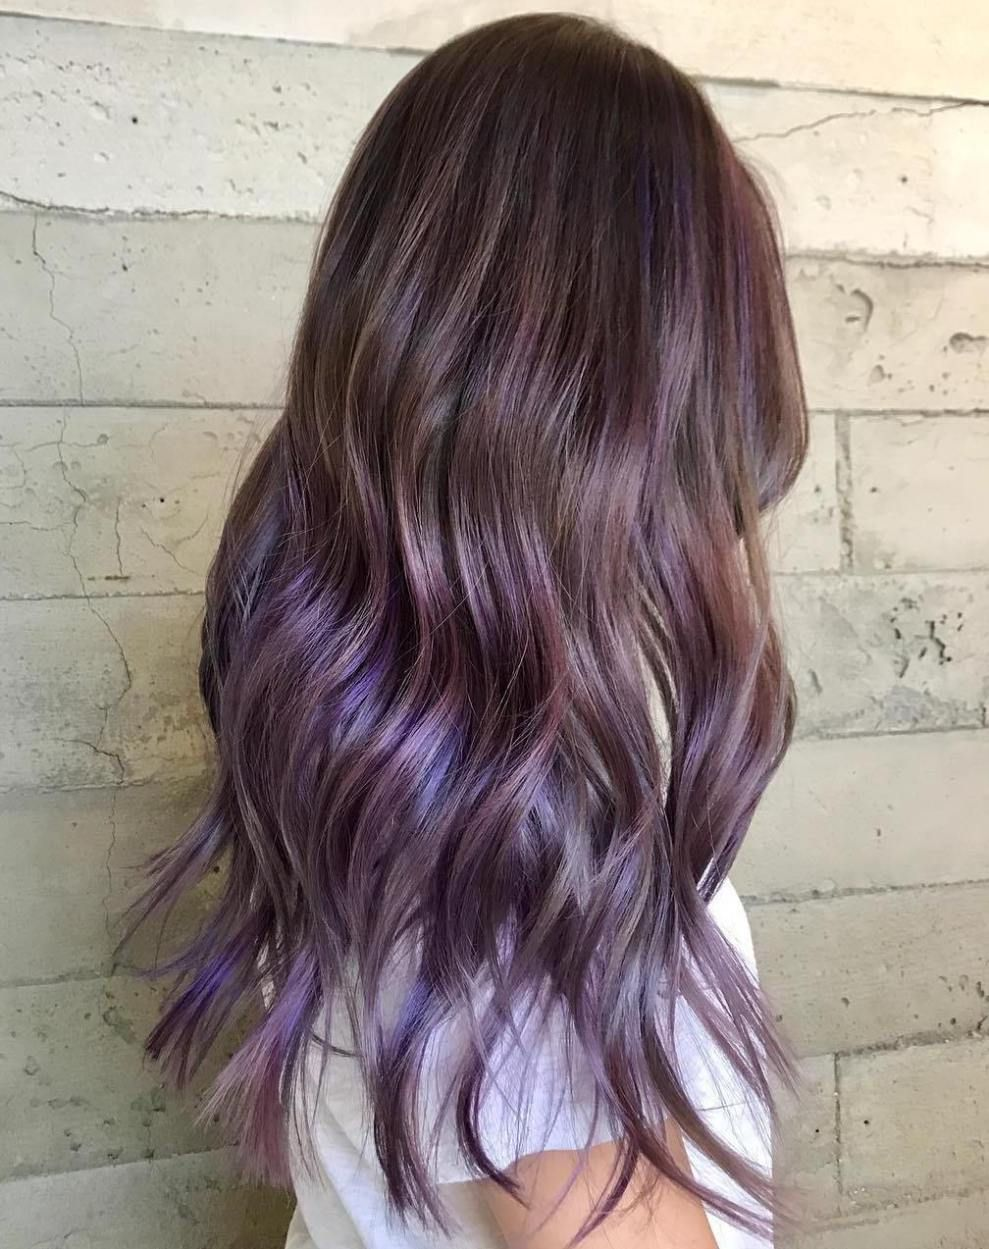 Hair Color Ideas: 20 Gorgeous Pastel Purple Hairstyles photo